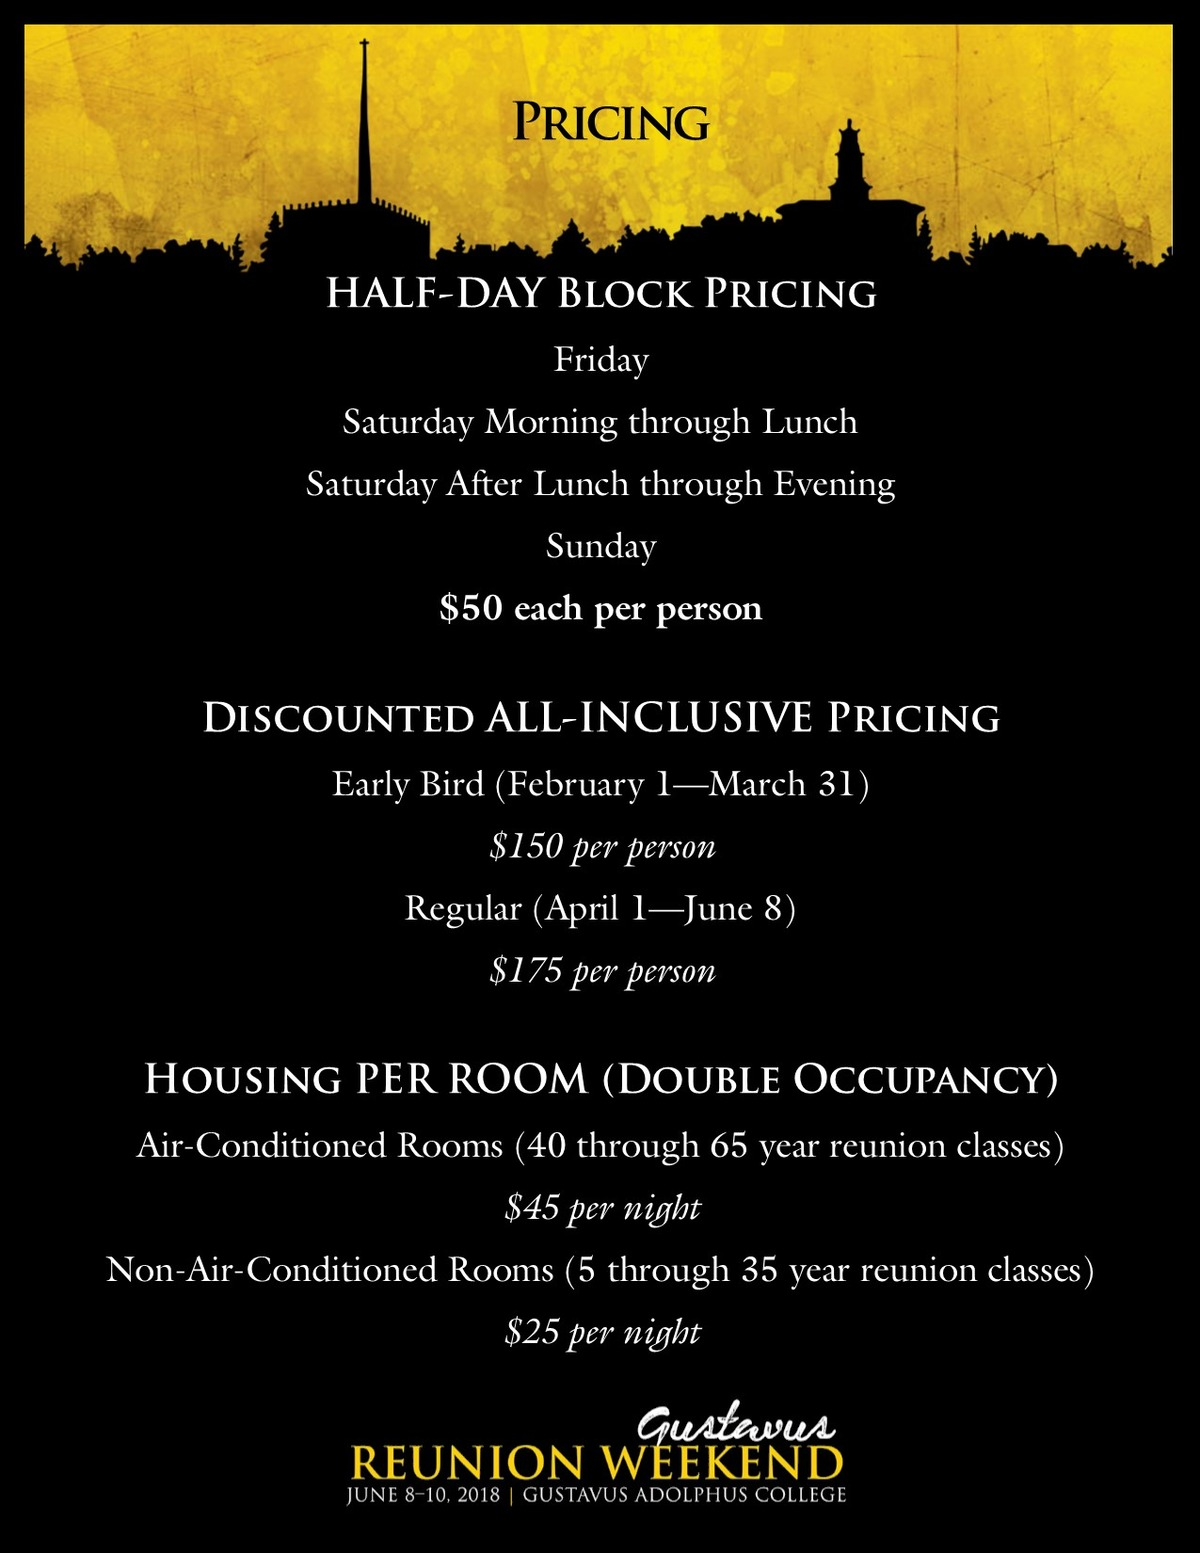 Reunion Weekend Schedule and Pricing Overview1